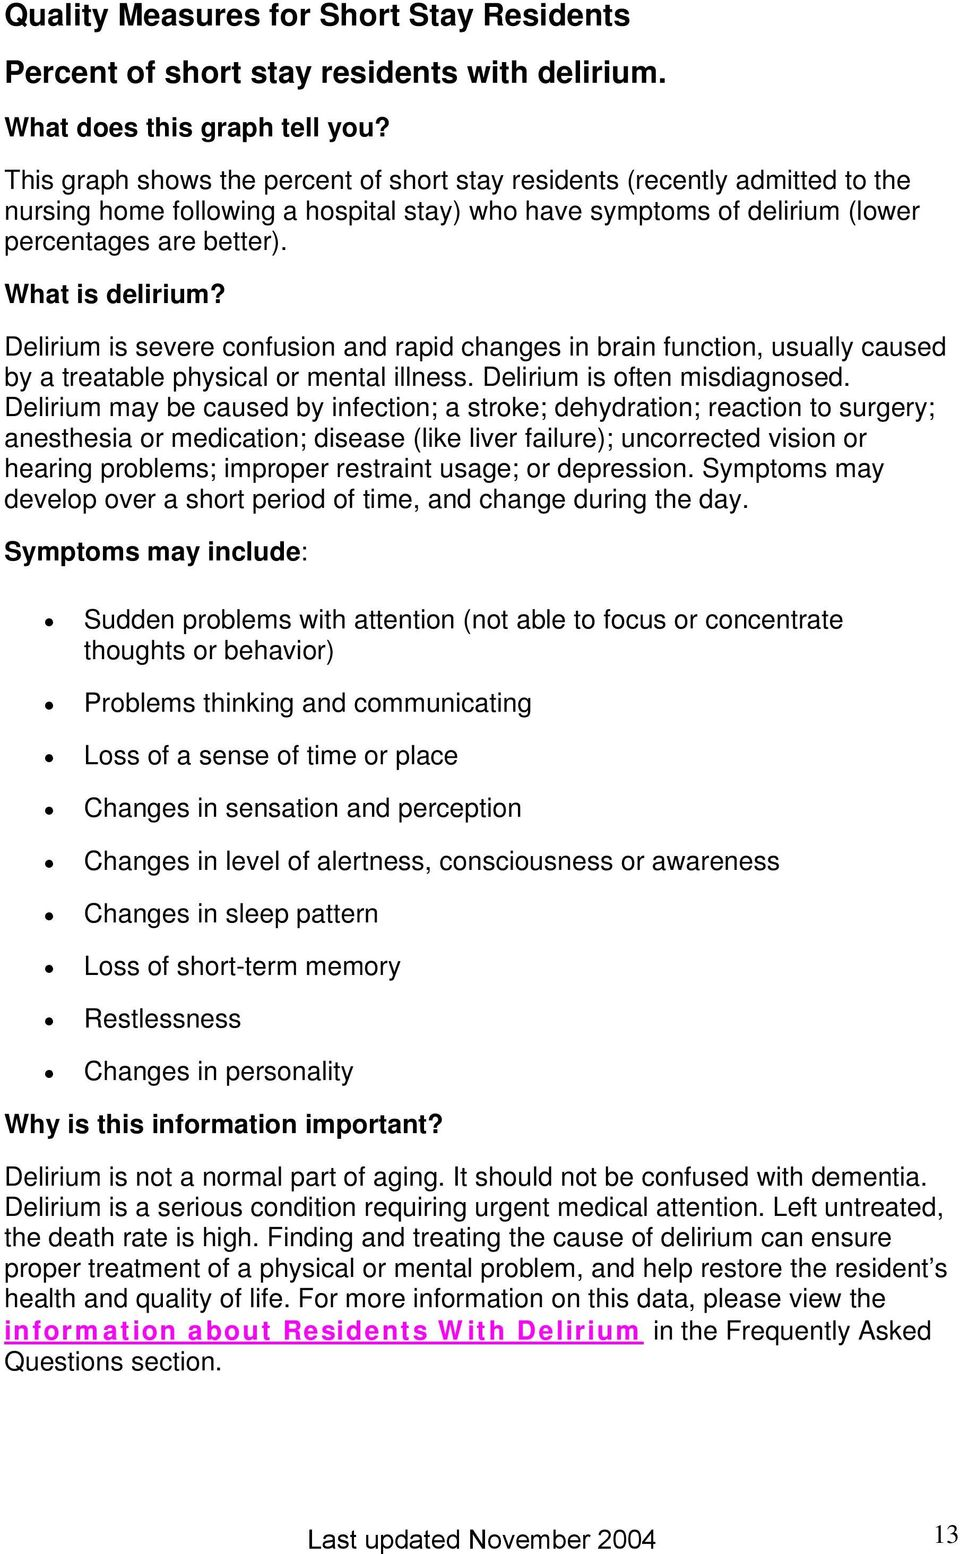 Delirium is severe confusion and rapid changes in brain function, usually caused by a treatable physical or mental illness. Delirium is often misdiagnosed.